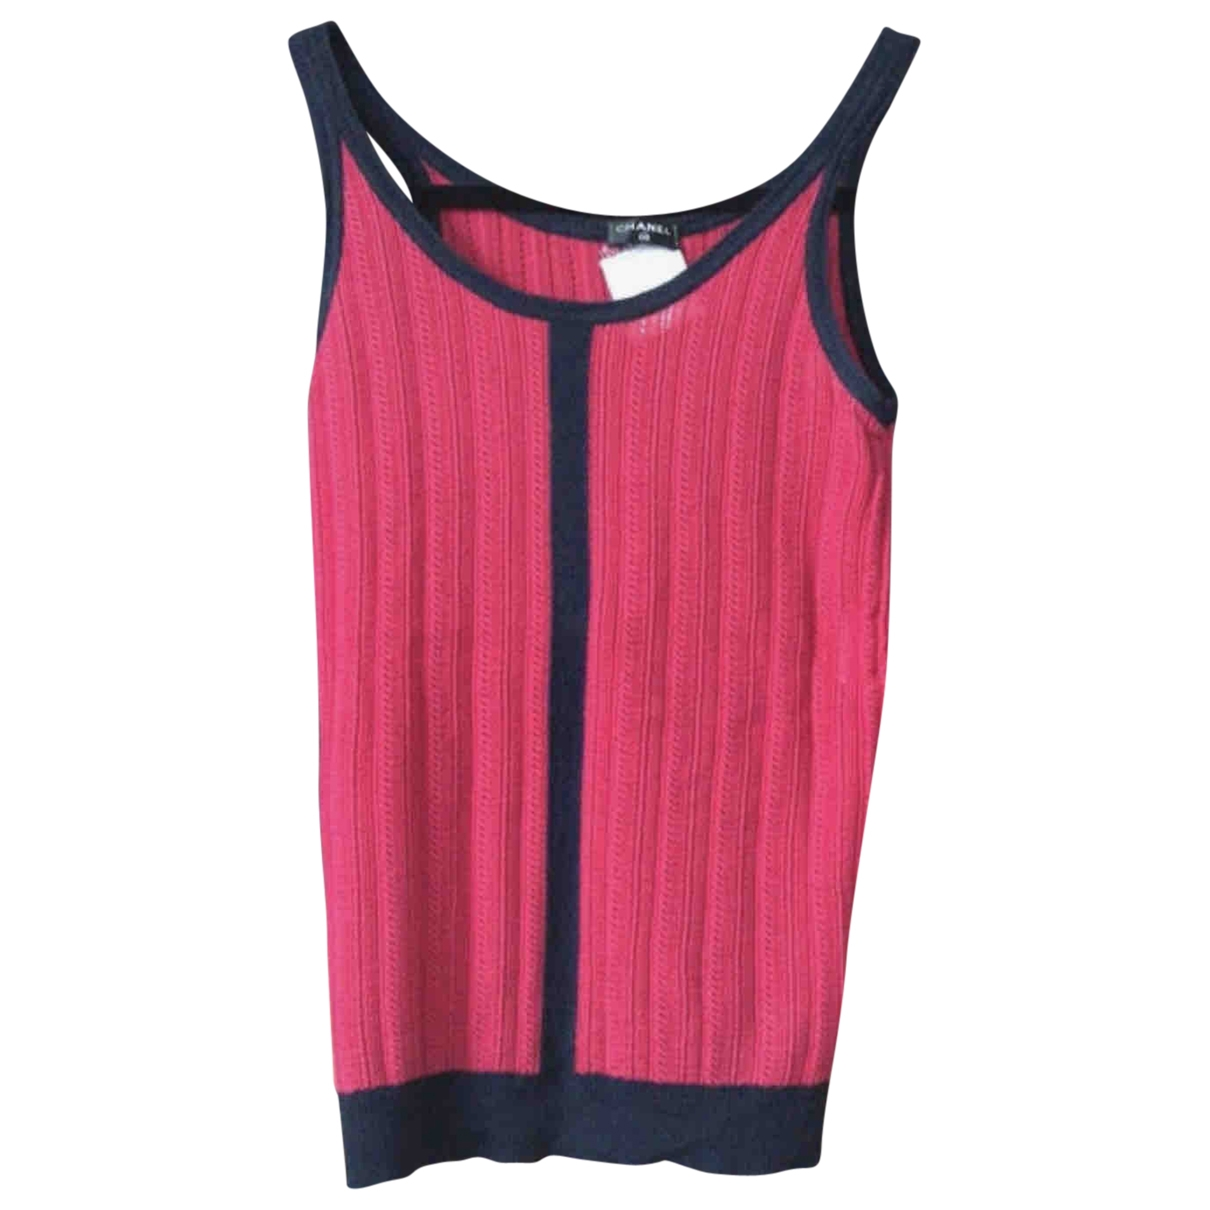 Chanel \N Red Cashmere  top for Women 36 FR